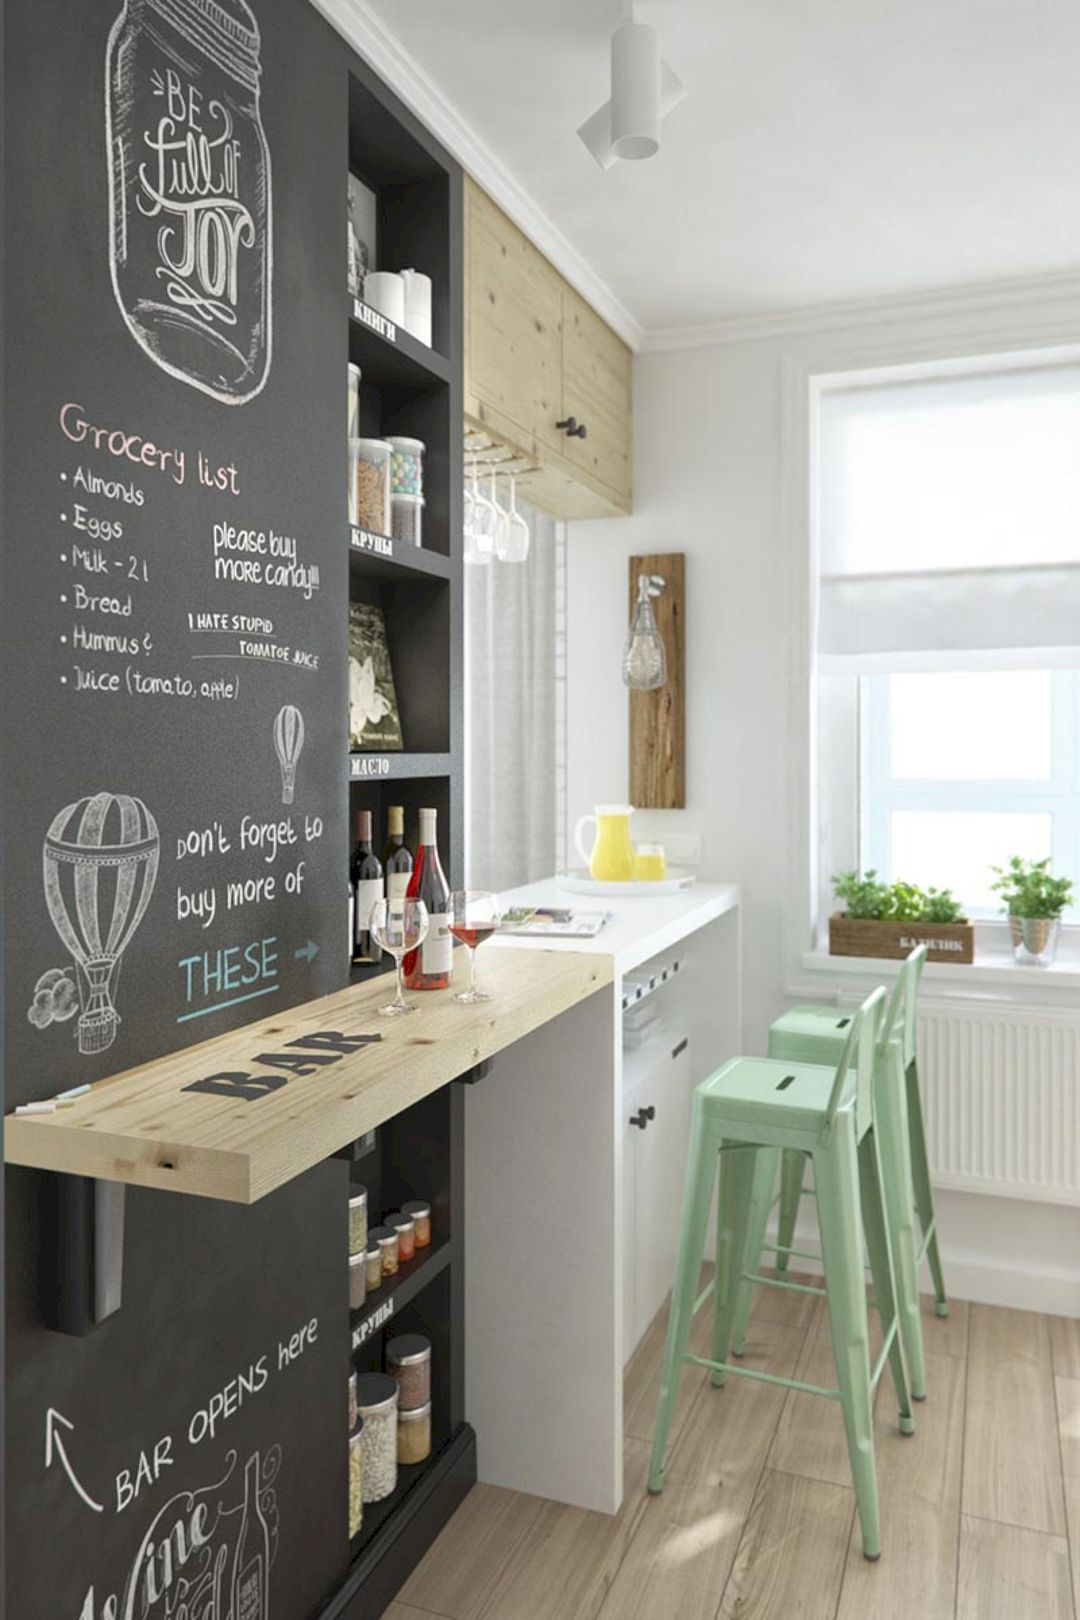 Merveilleux Amazing Small Kitchen Ideas For Small Space 21